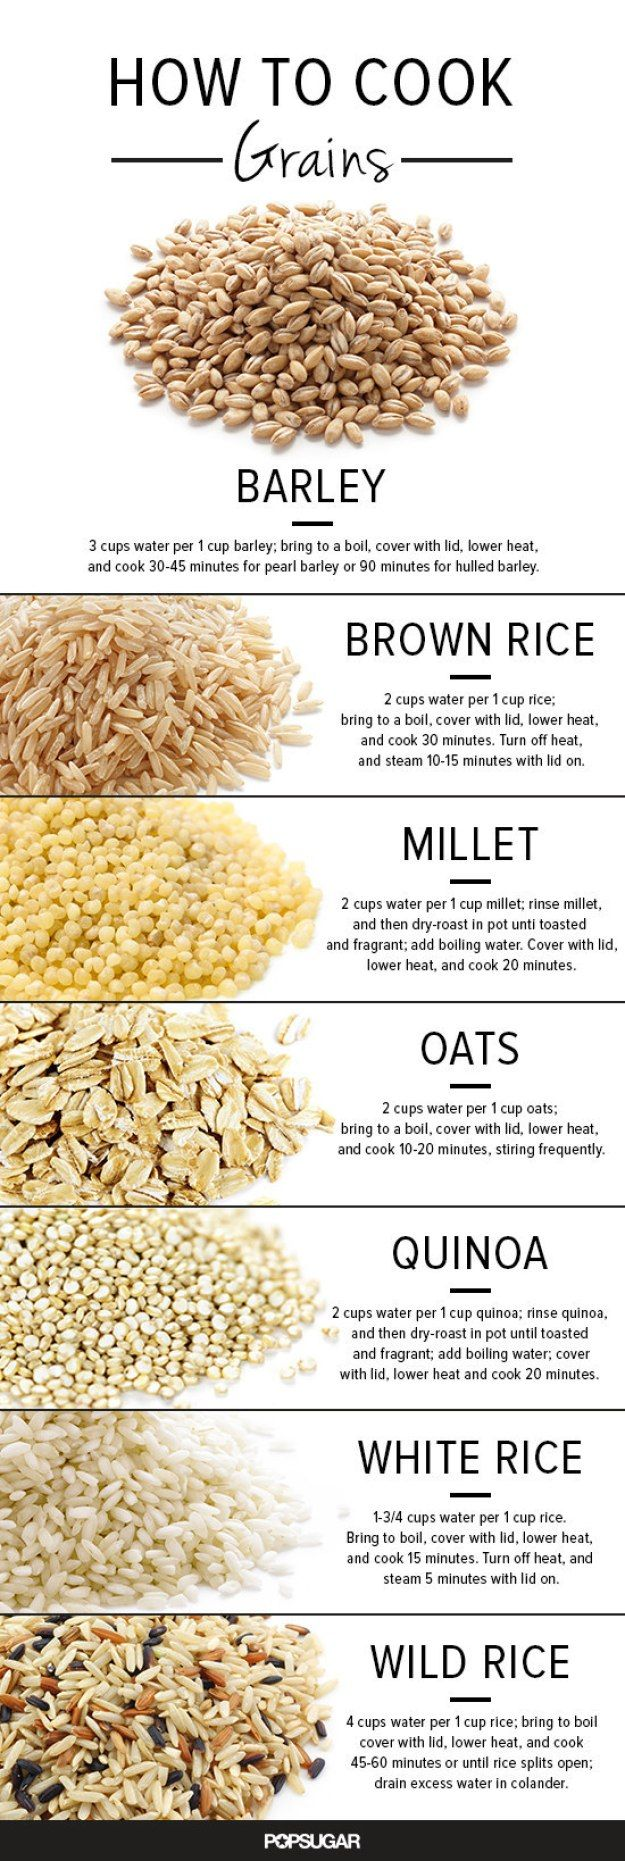 To date the BEST all around guide to healthy eating I've seen! - Album on Imgur